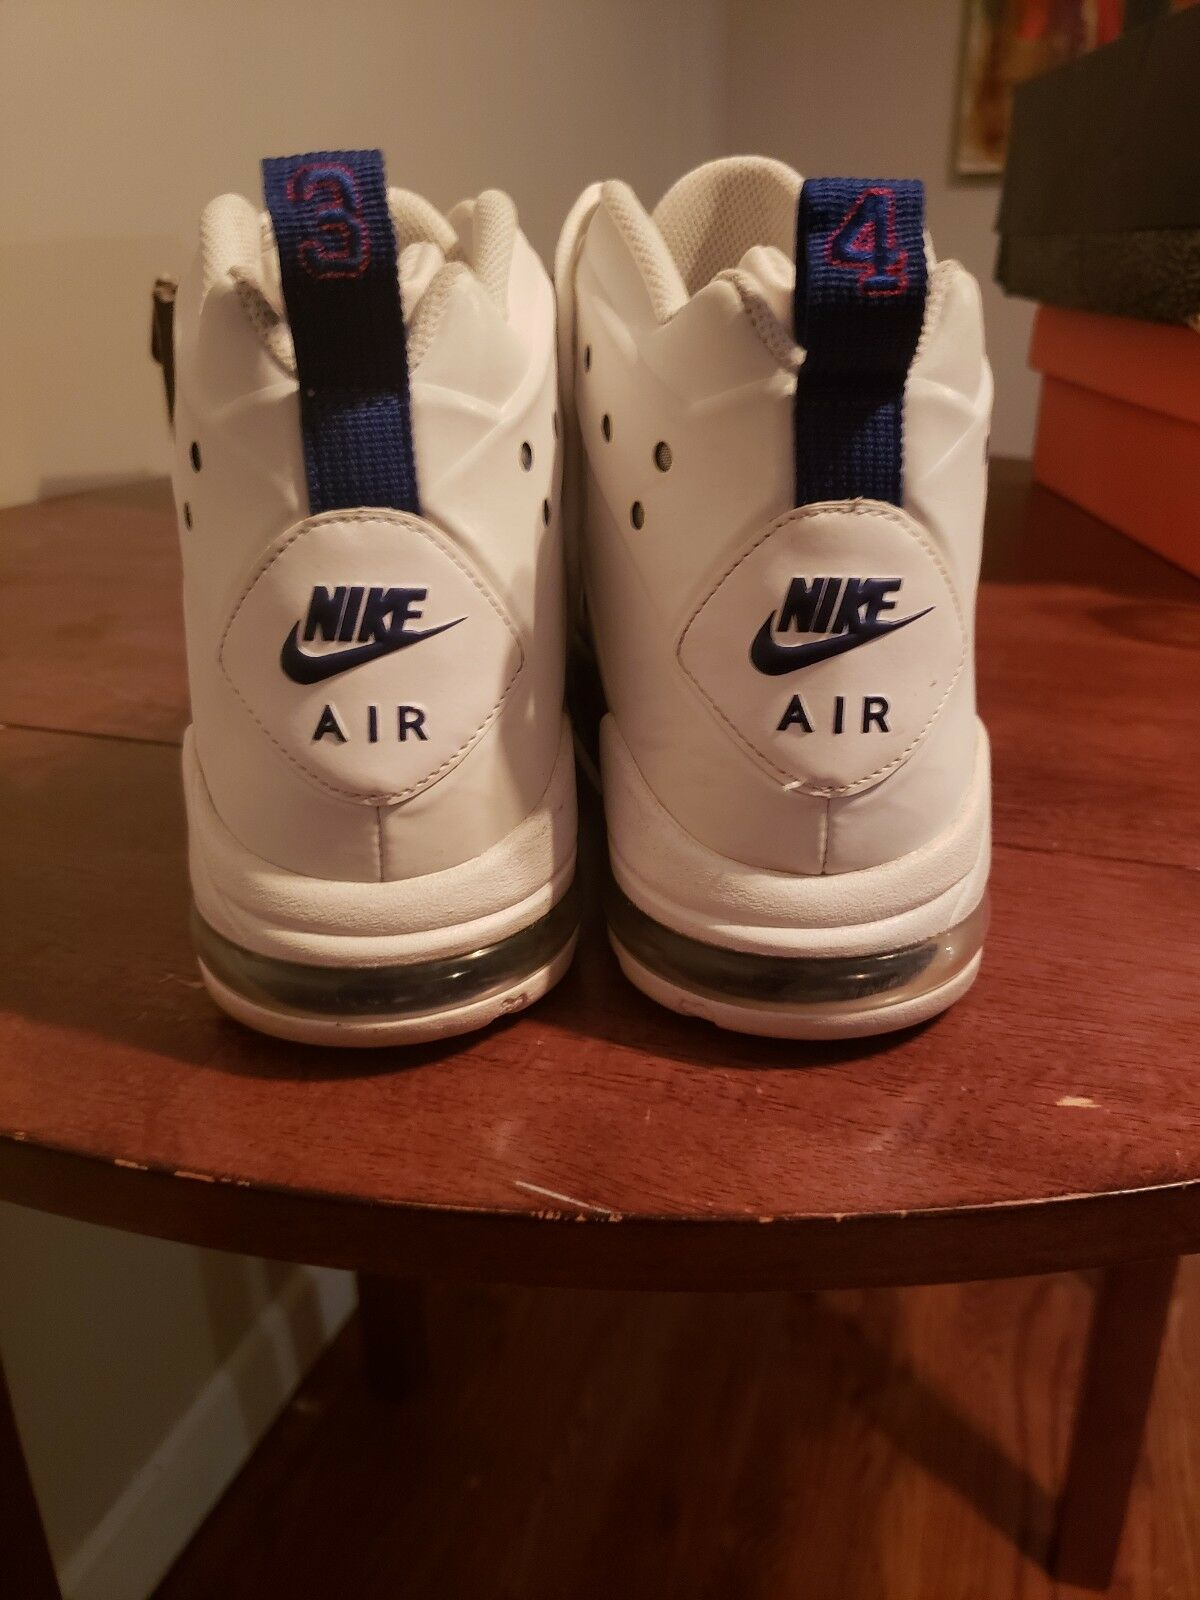 Nike air max 2 bc 94 charles barkley 2011 - tech sixers 46 usato ds